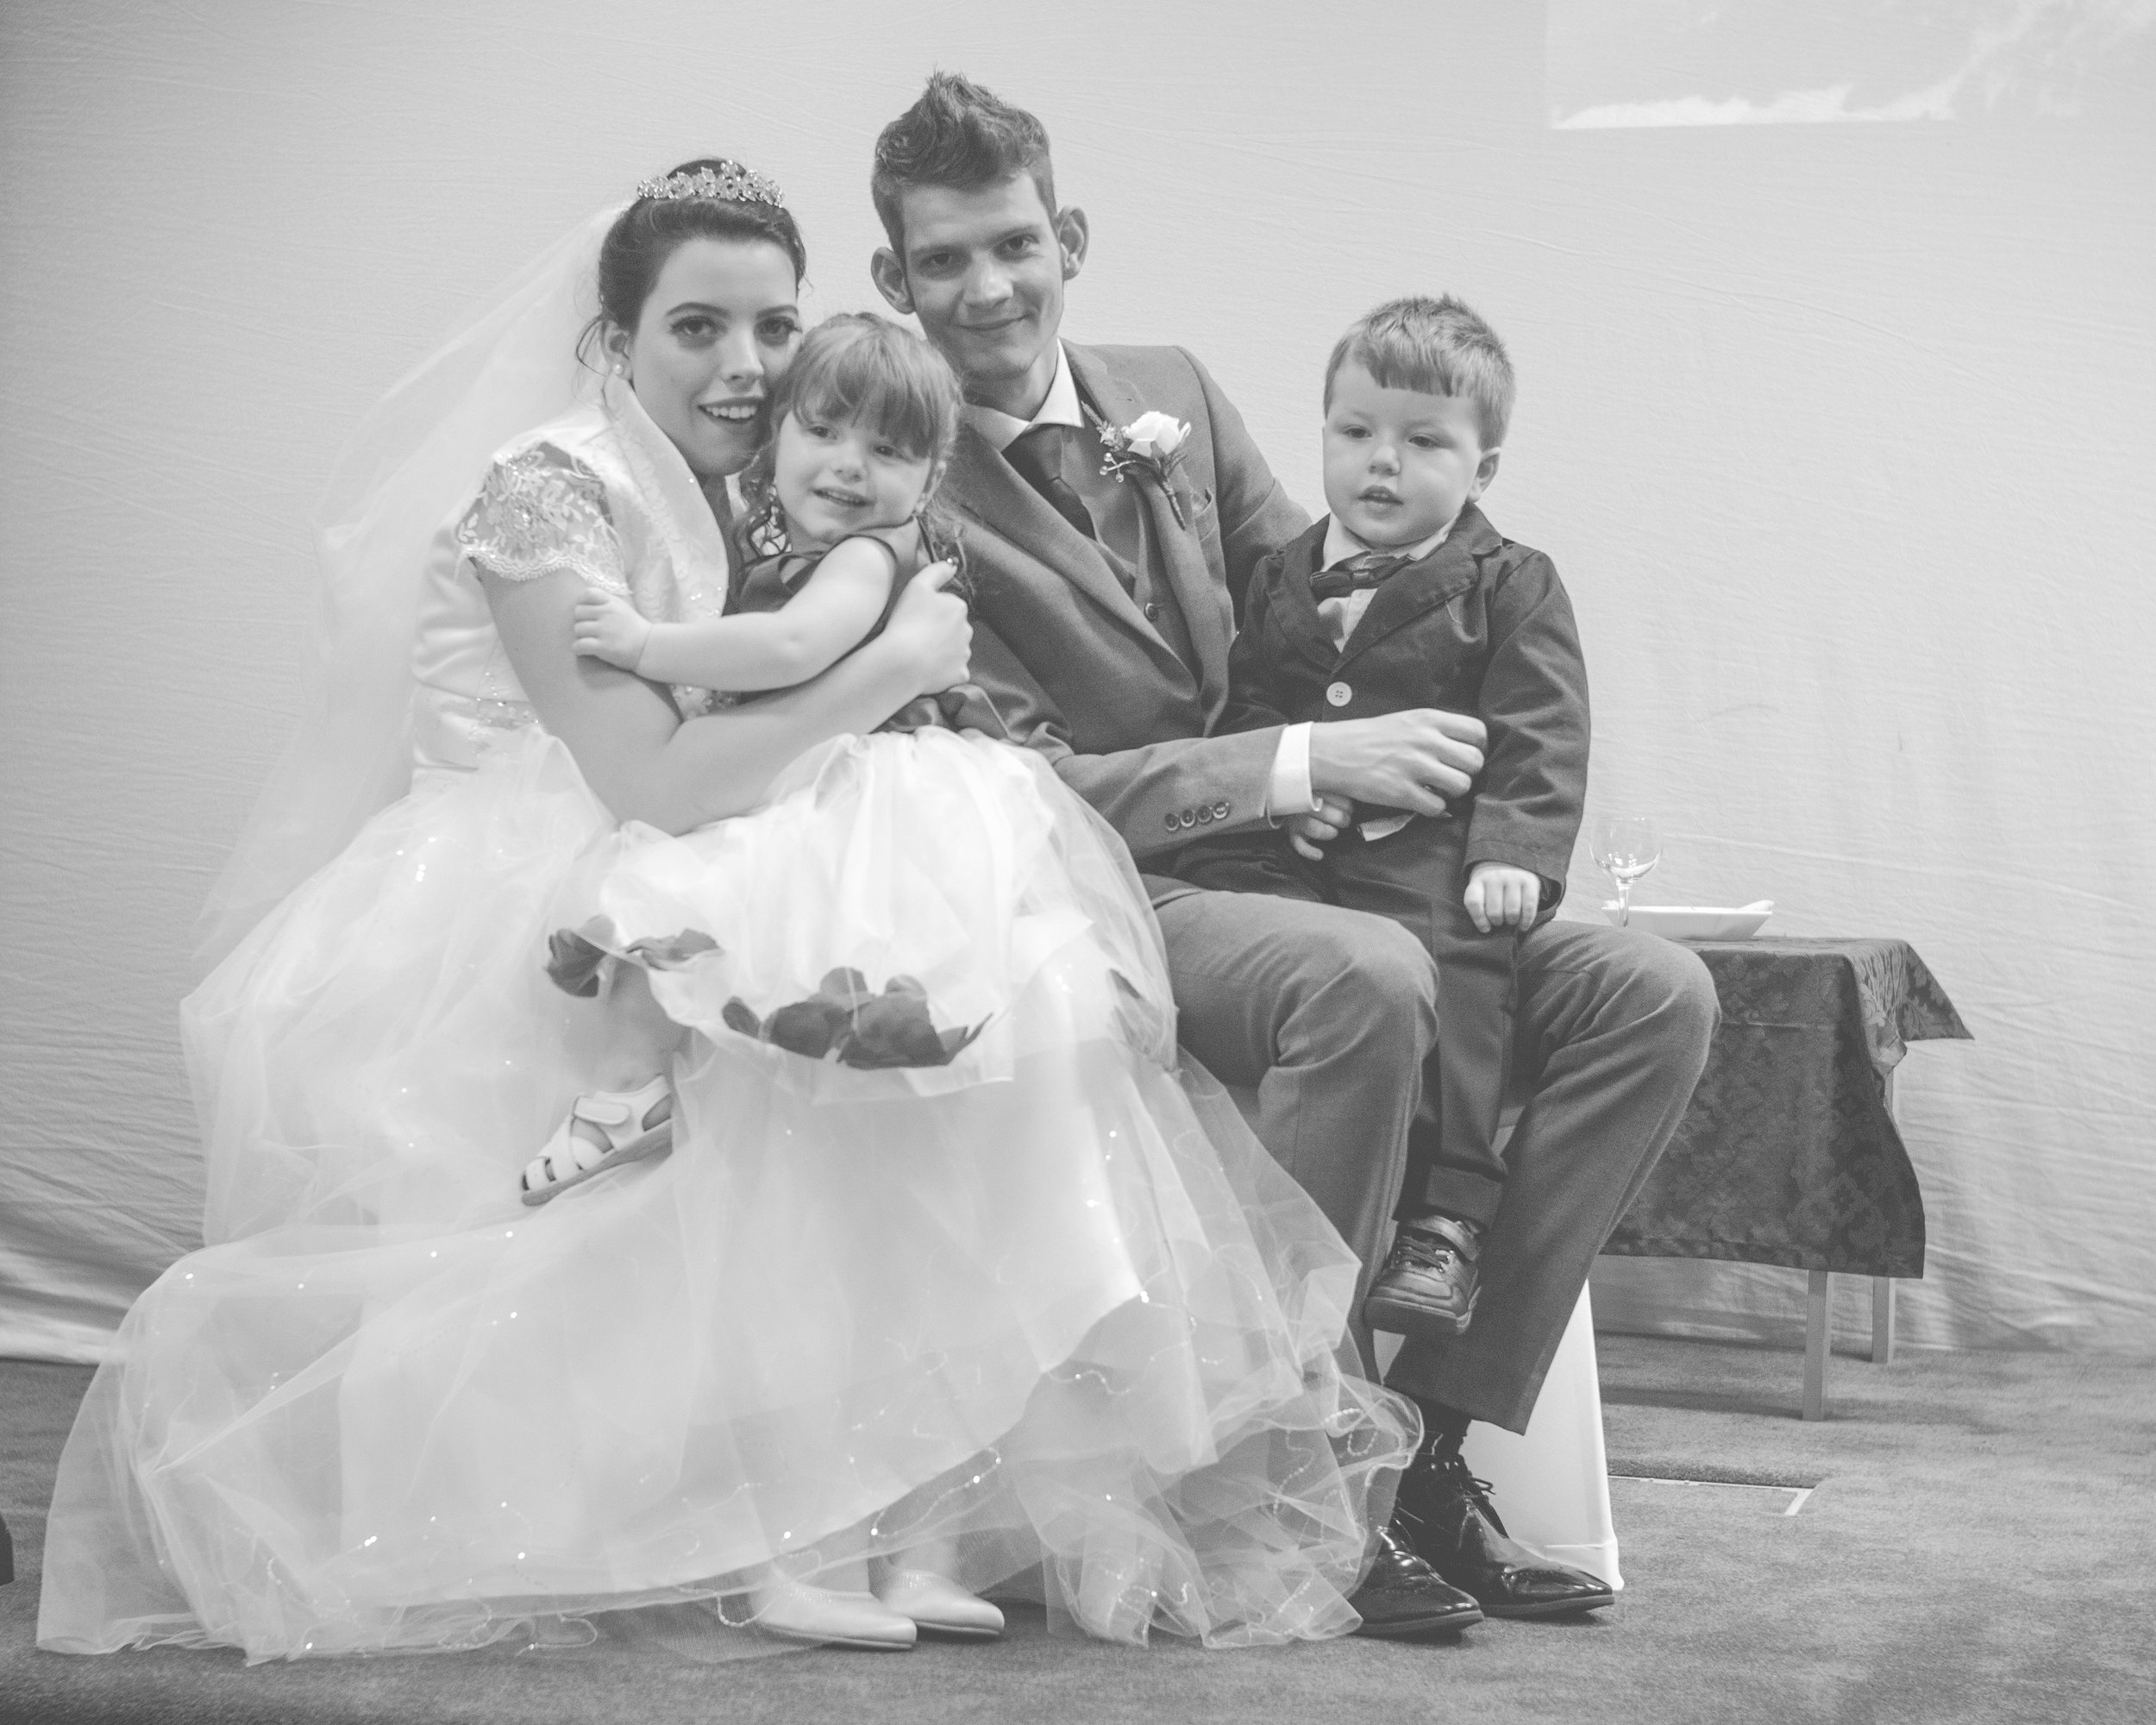 keighley-wedding-photography-all-nations-church-22